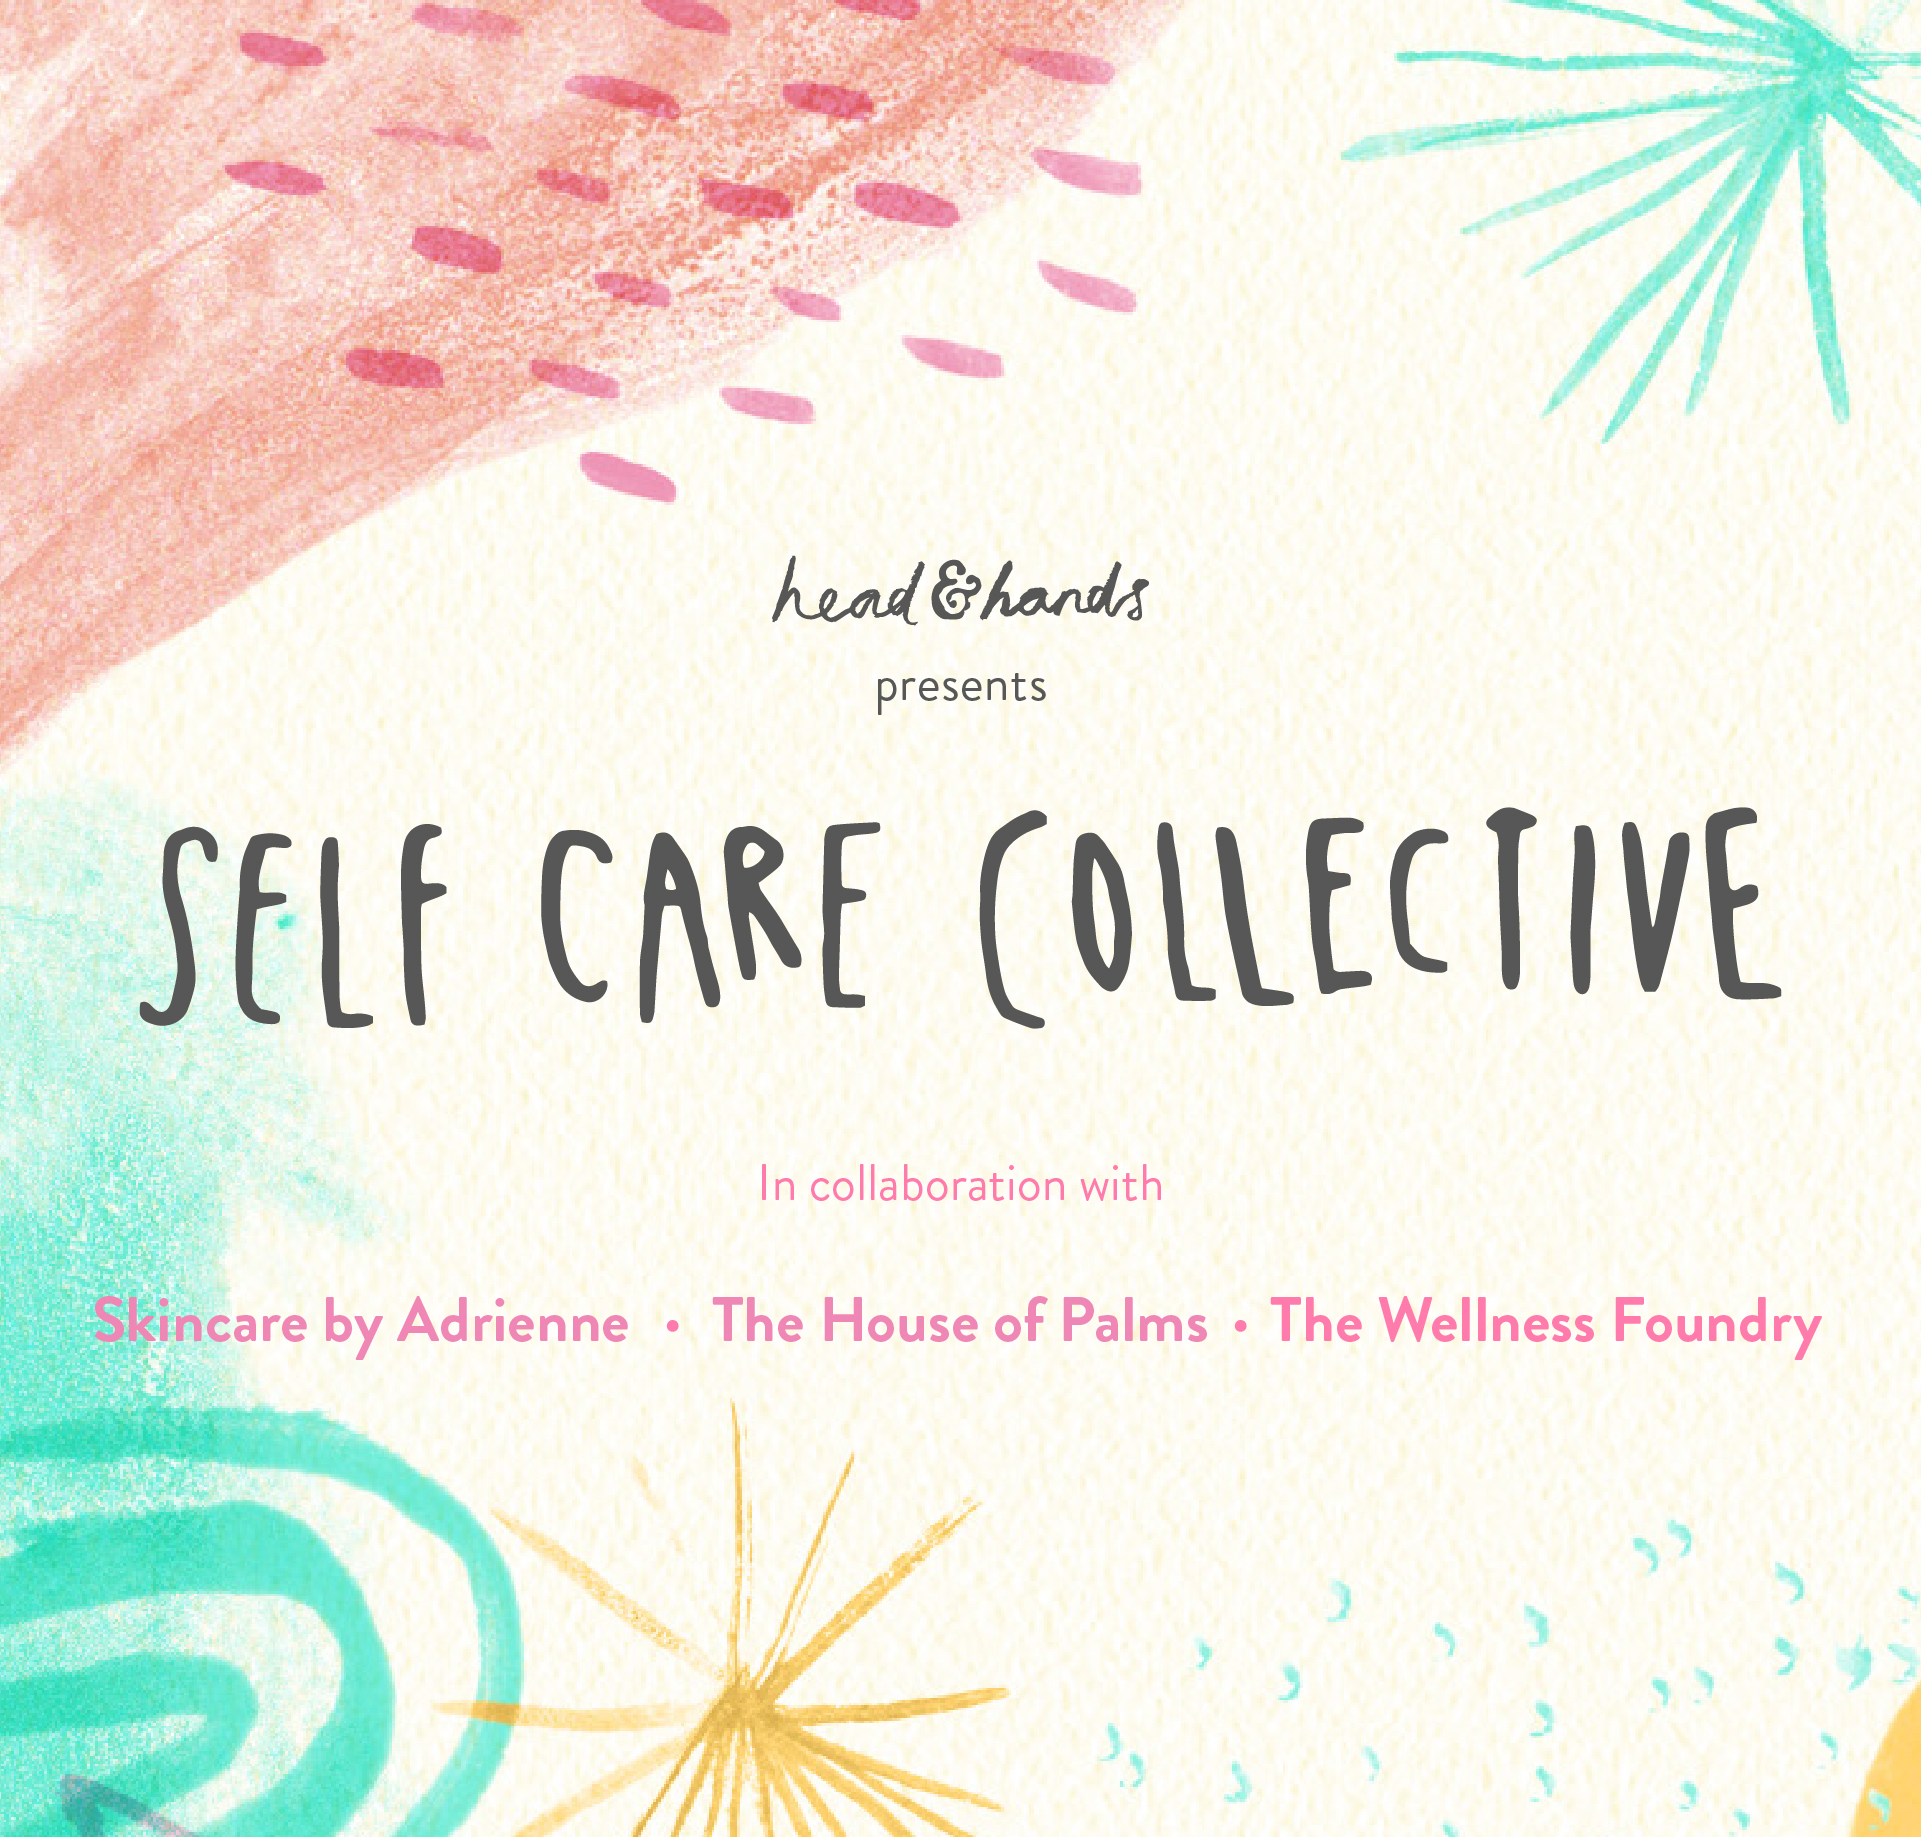 Self Love Saturday, May 2019 - We joined up with Head & Hands and Skincare by Adrienne for a relaxed self-care day of holistic treatments, a craft workshop & vegan snacks.